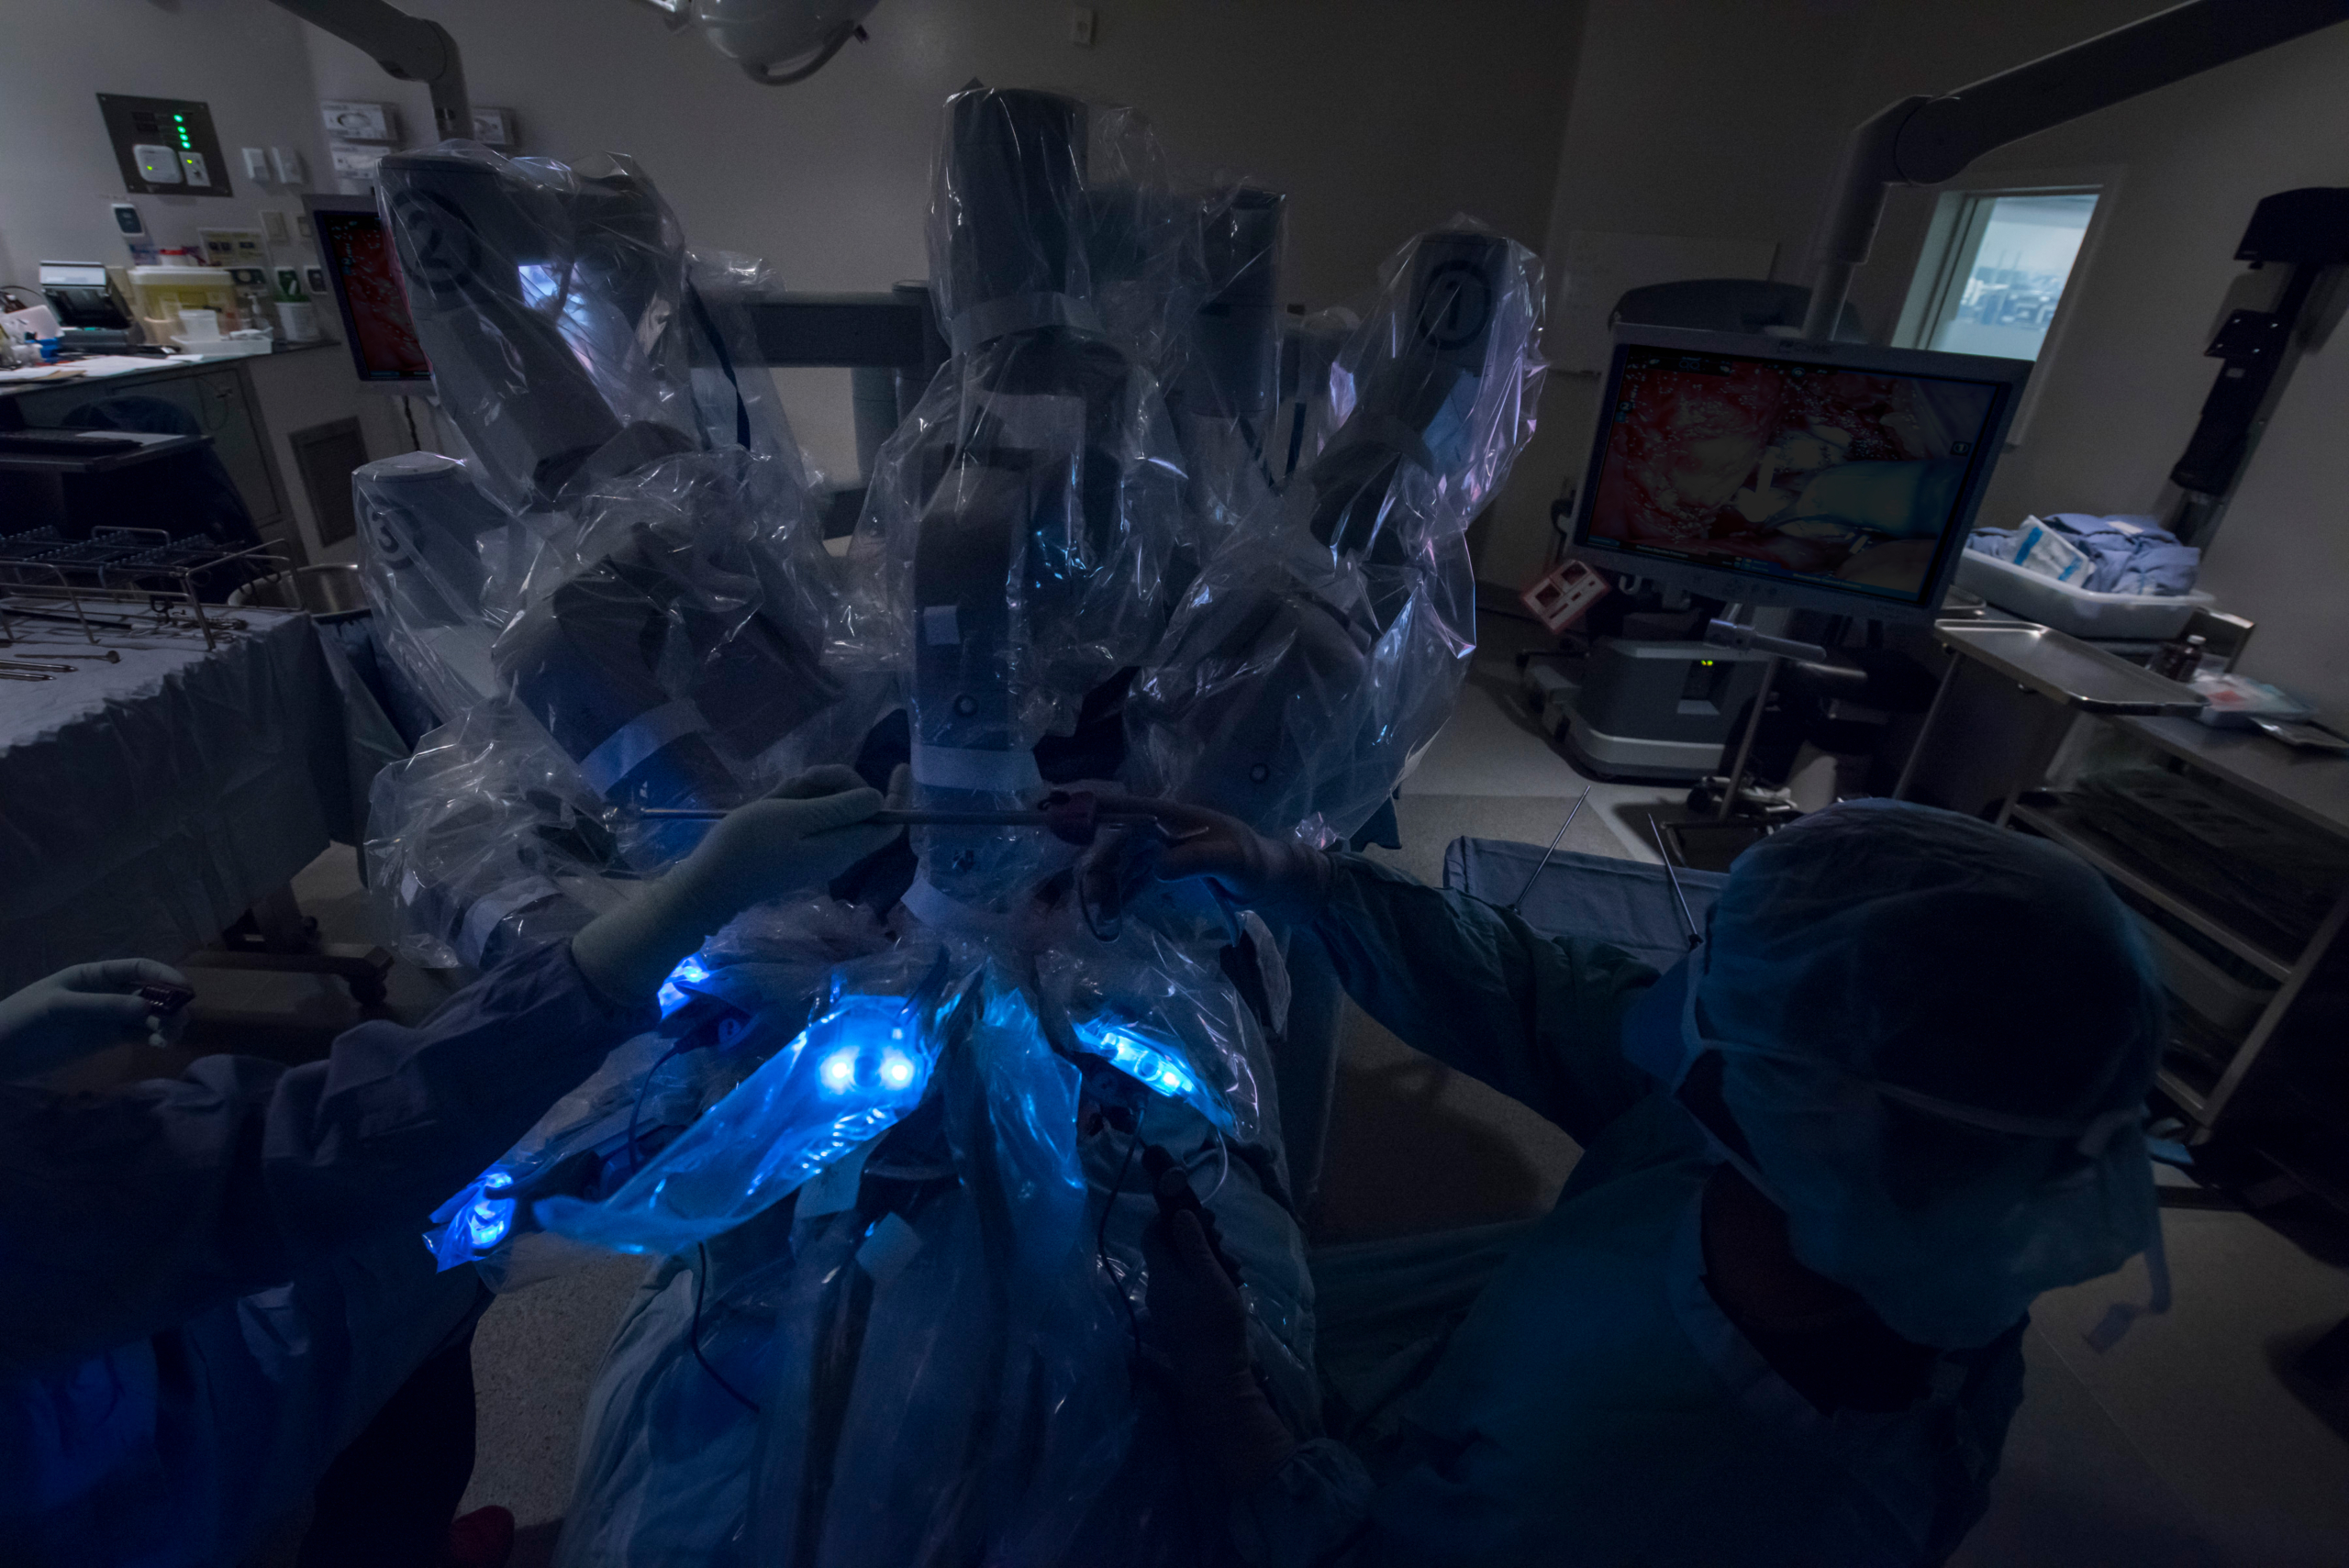 The da Vinci Surgical System is a state-of-the-art robotic system